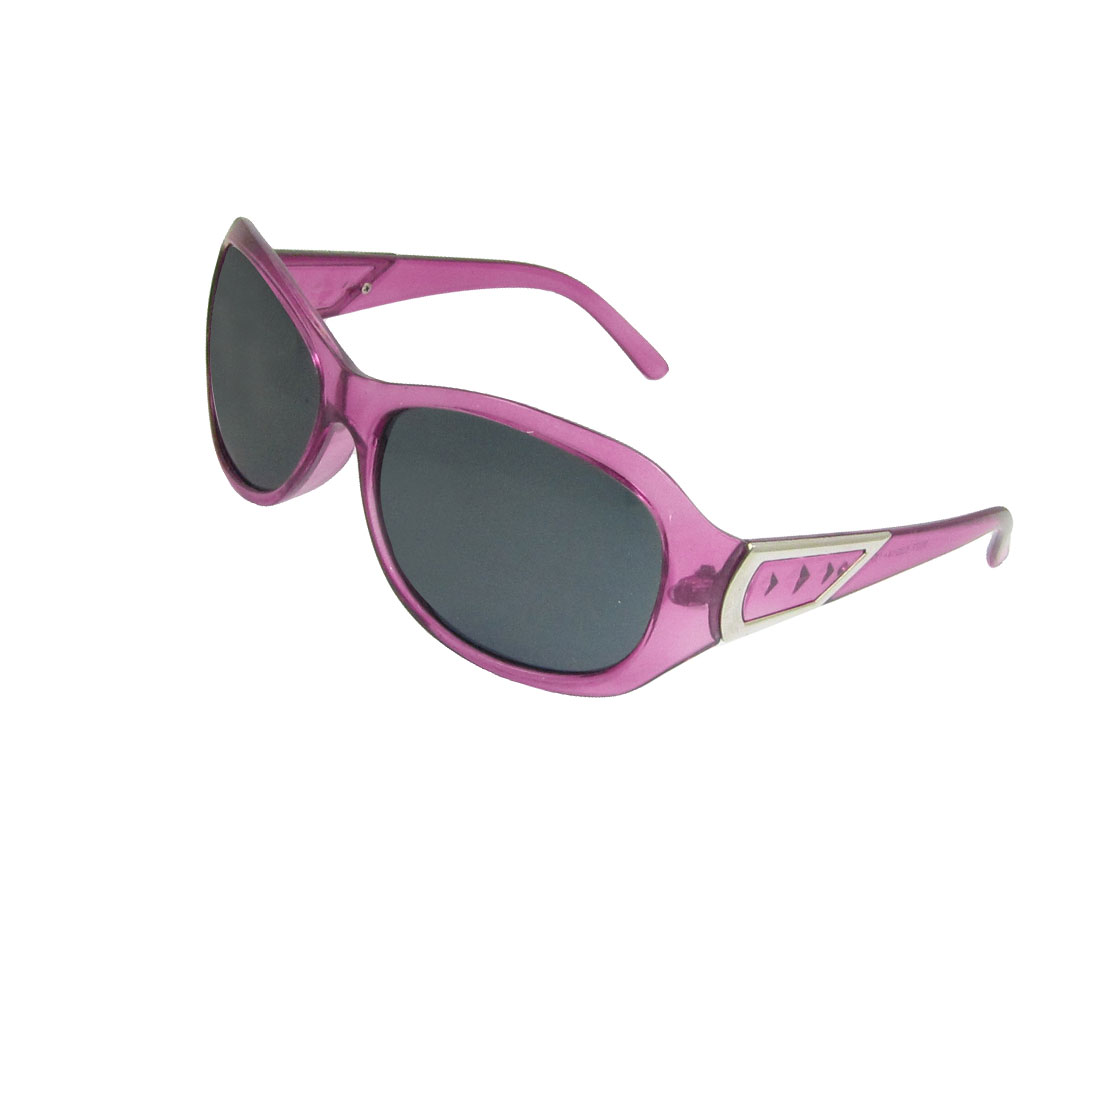 Lady Fuchsia Plastic Arms Gray Lens Polarized Sunglasses w Case Holder